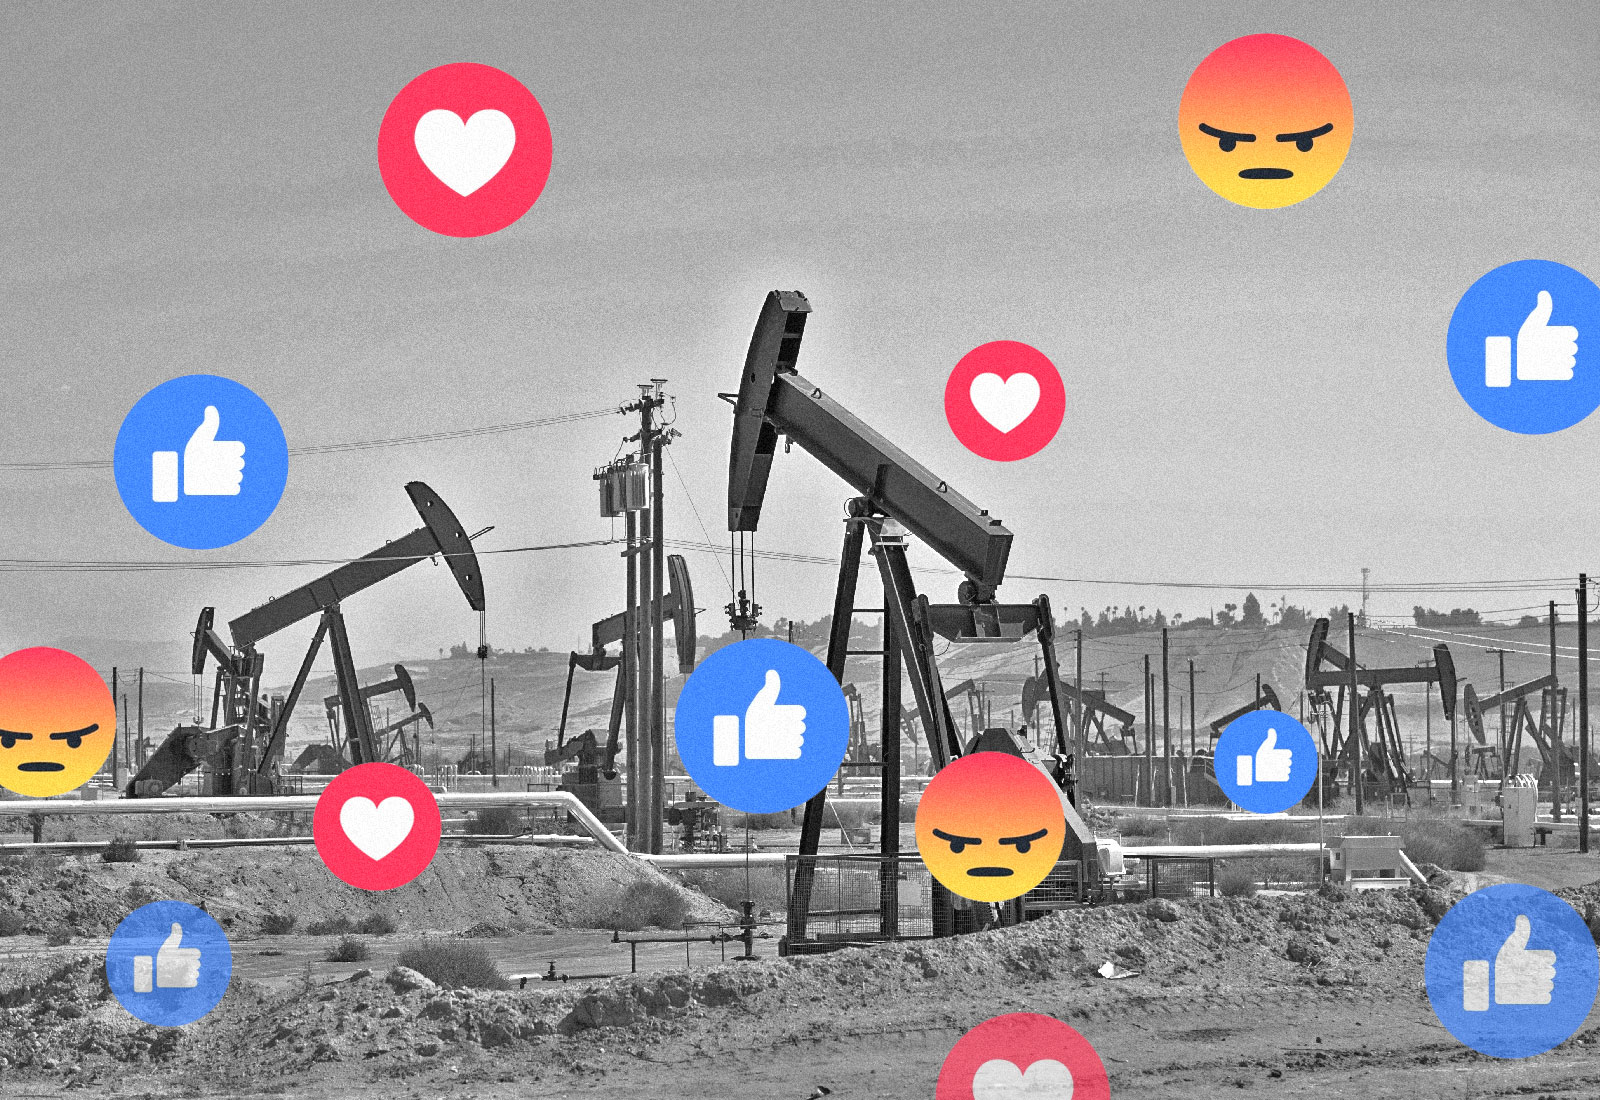 Collage: a photo of oil pumpjacks with Facebook emoji reactions on top